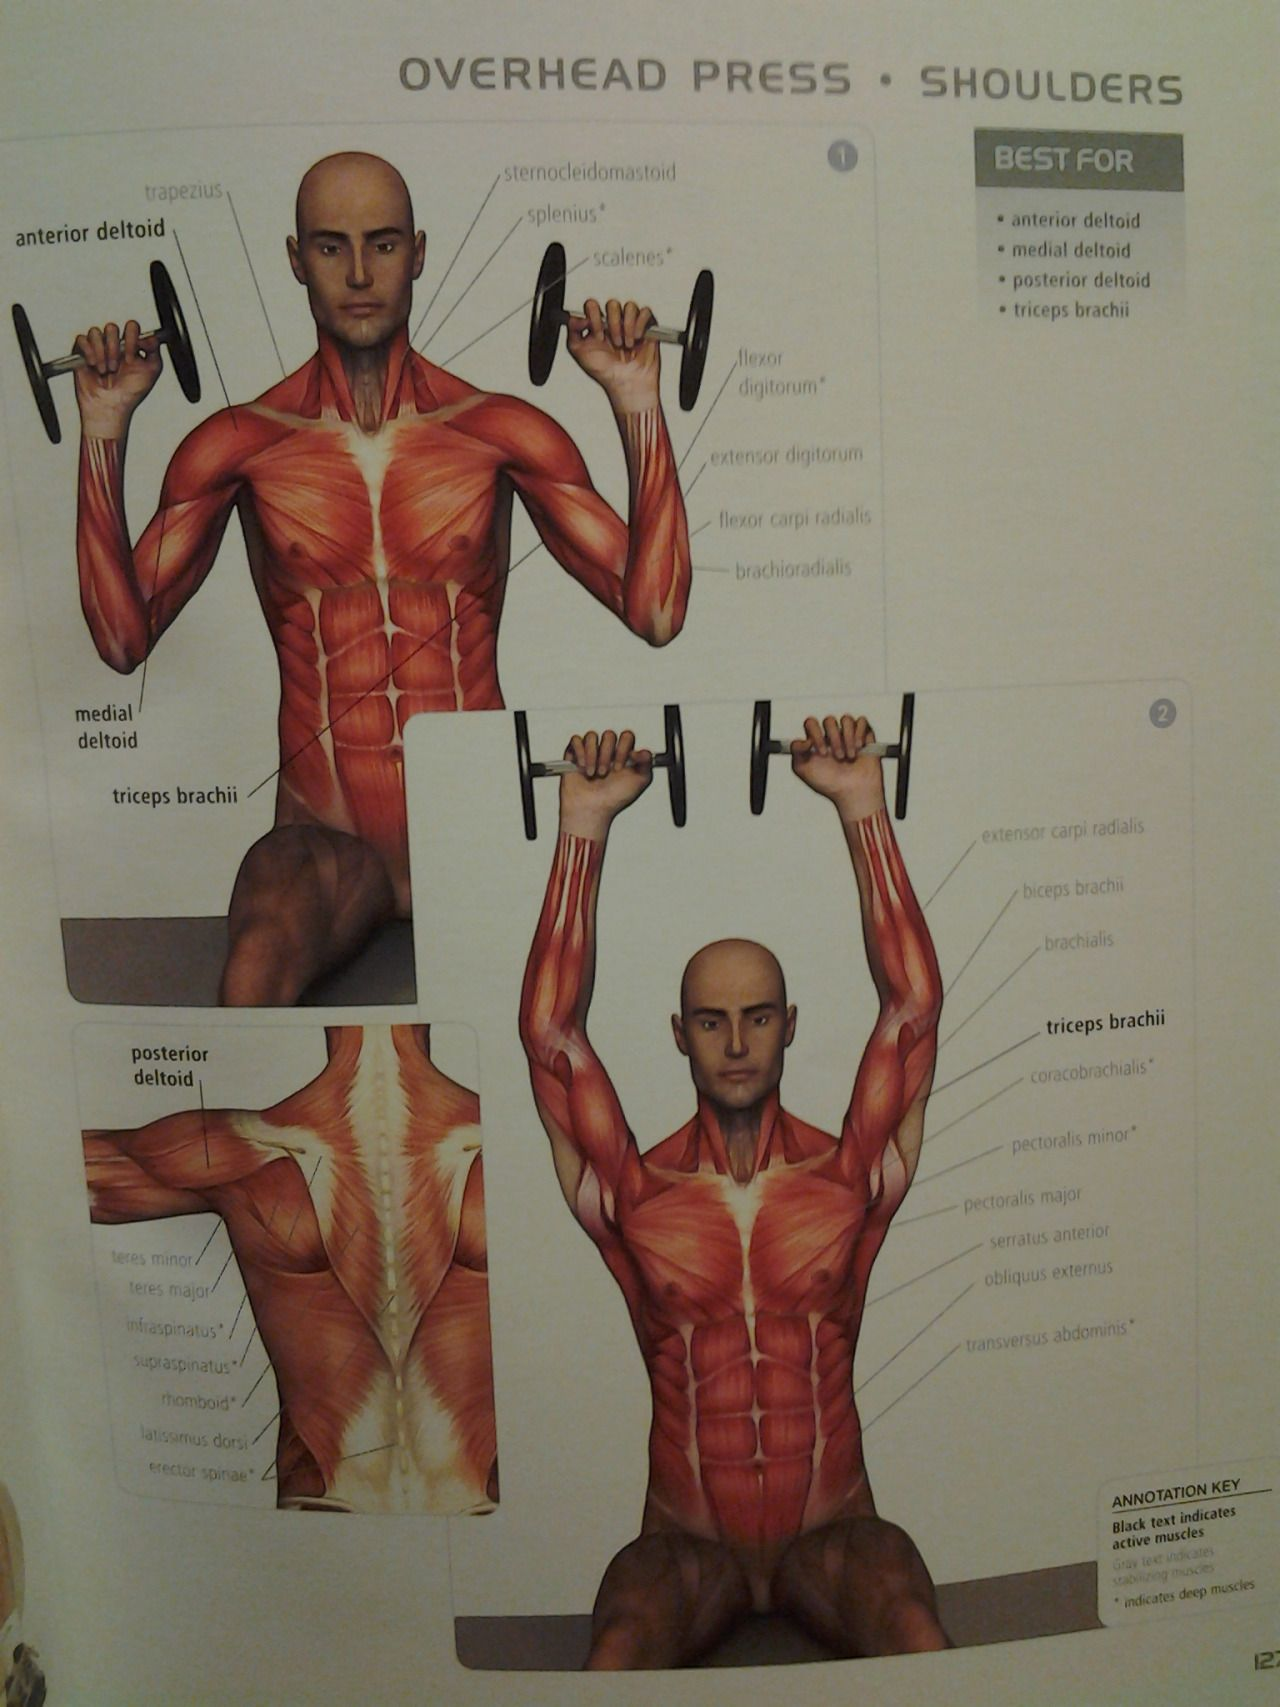 Shoulders  Overhead Press  Ant  Medial  Post Deltoid